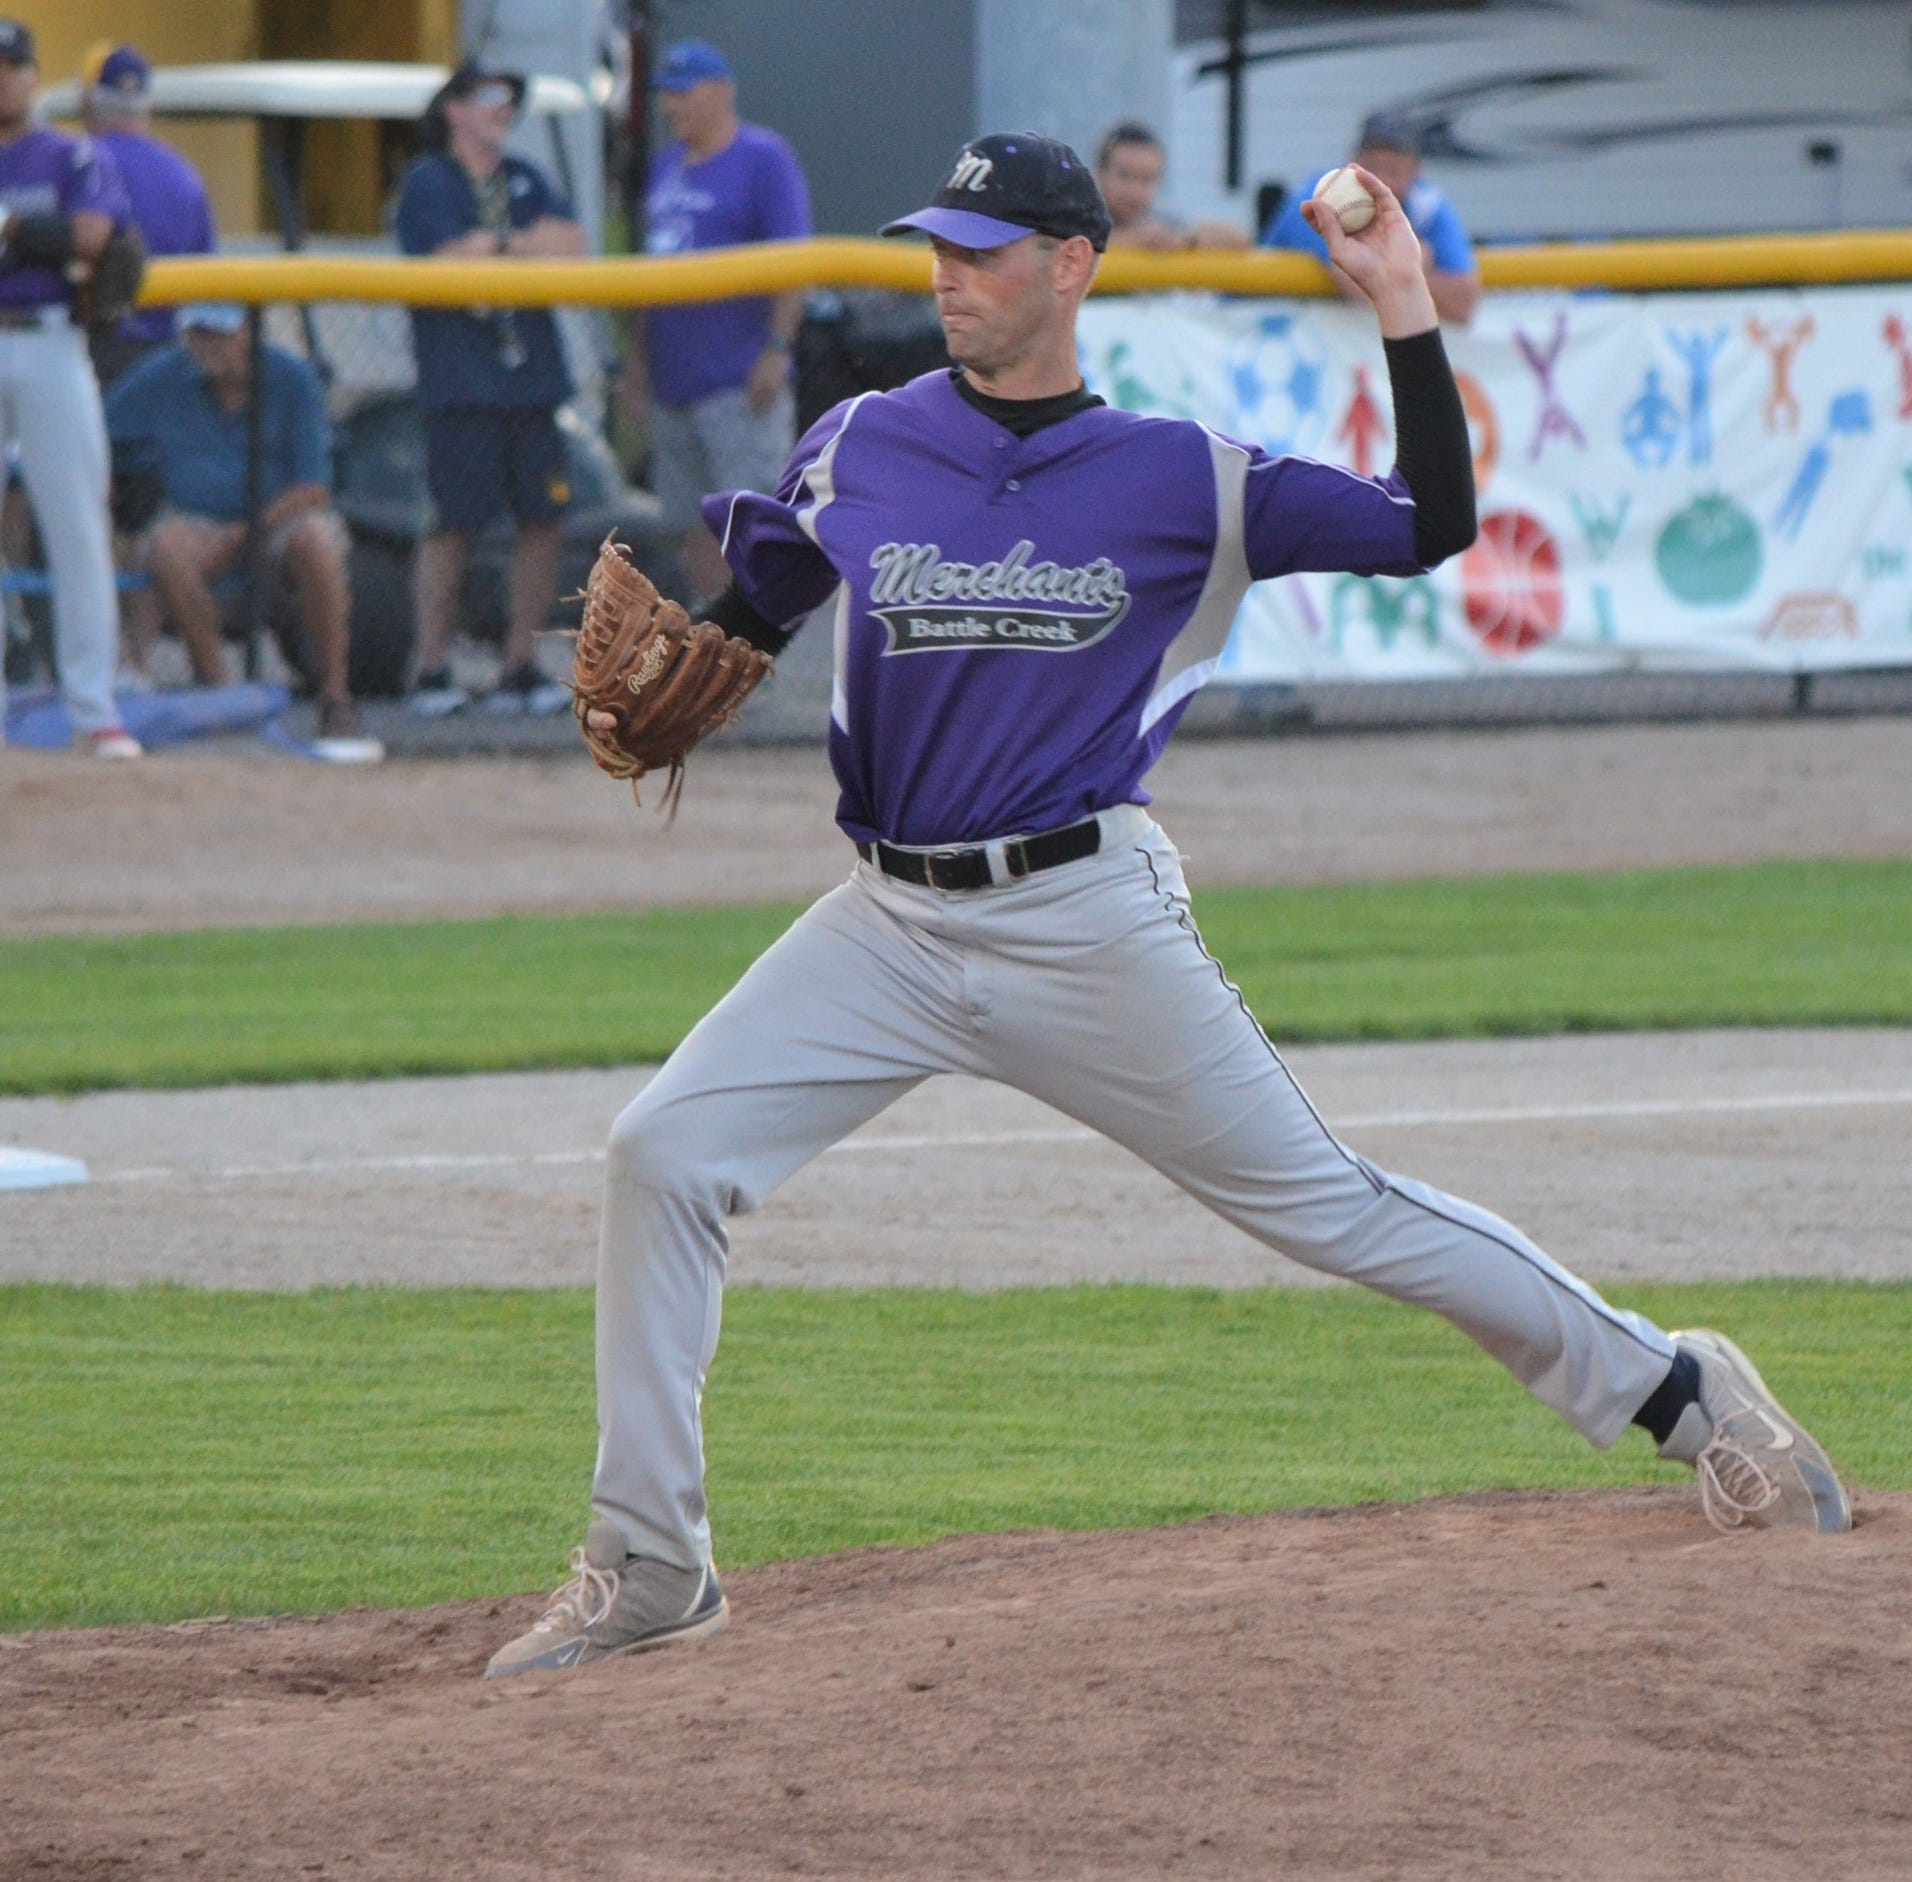 Battle Creek Merchants fall short against defending champs in NABF World Series opener